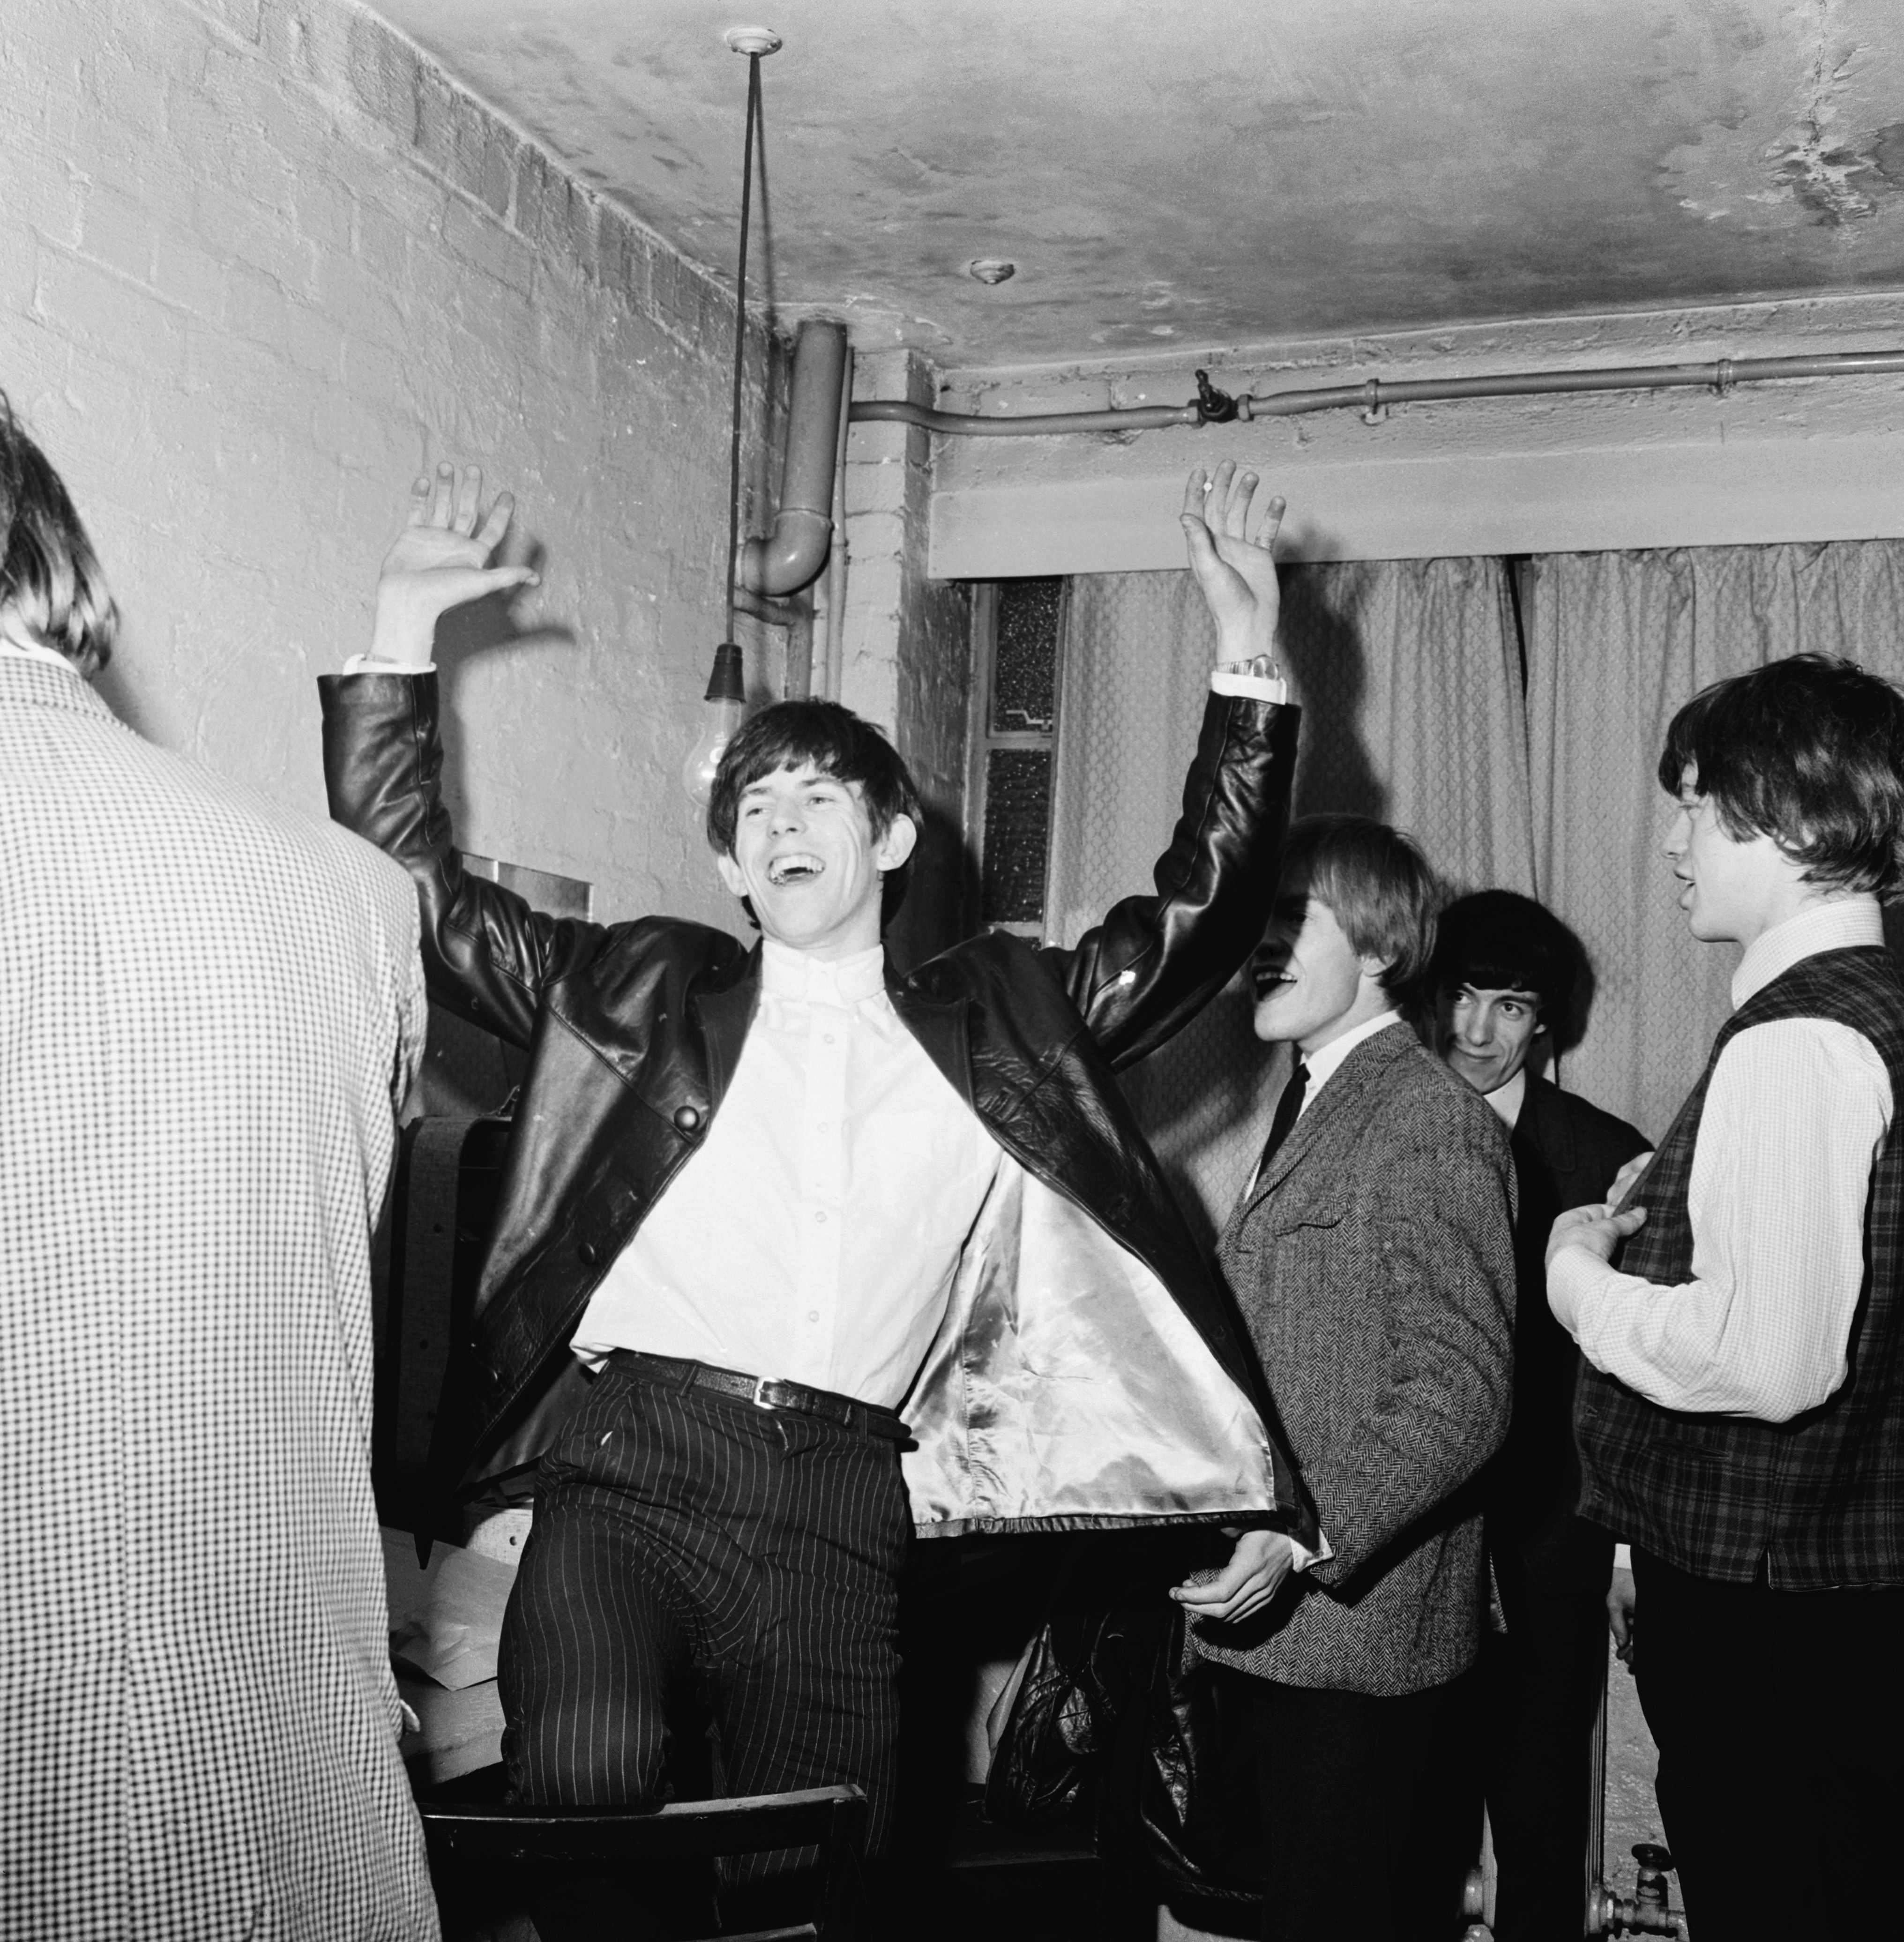 Guitarist Keith Richards laughing with Mick Jagger, Brian Jones and Bill Wyman backstage during an early Rolling Stones tour, December 1963. (Photo by Chris Ware/Keystone Features/Getty Images)